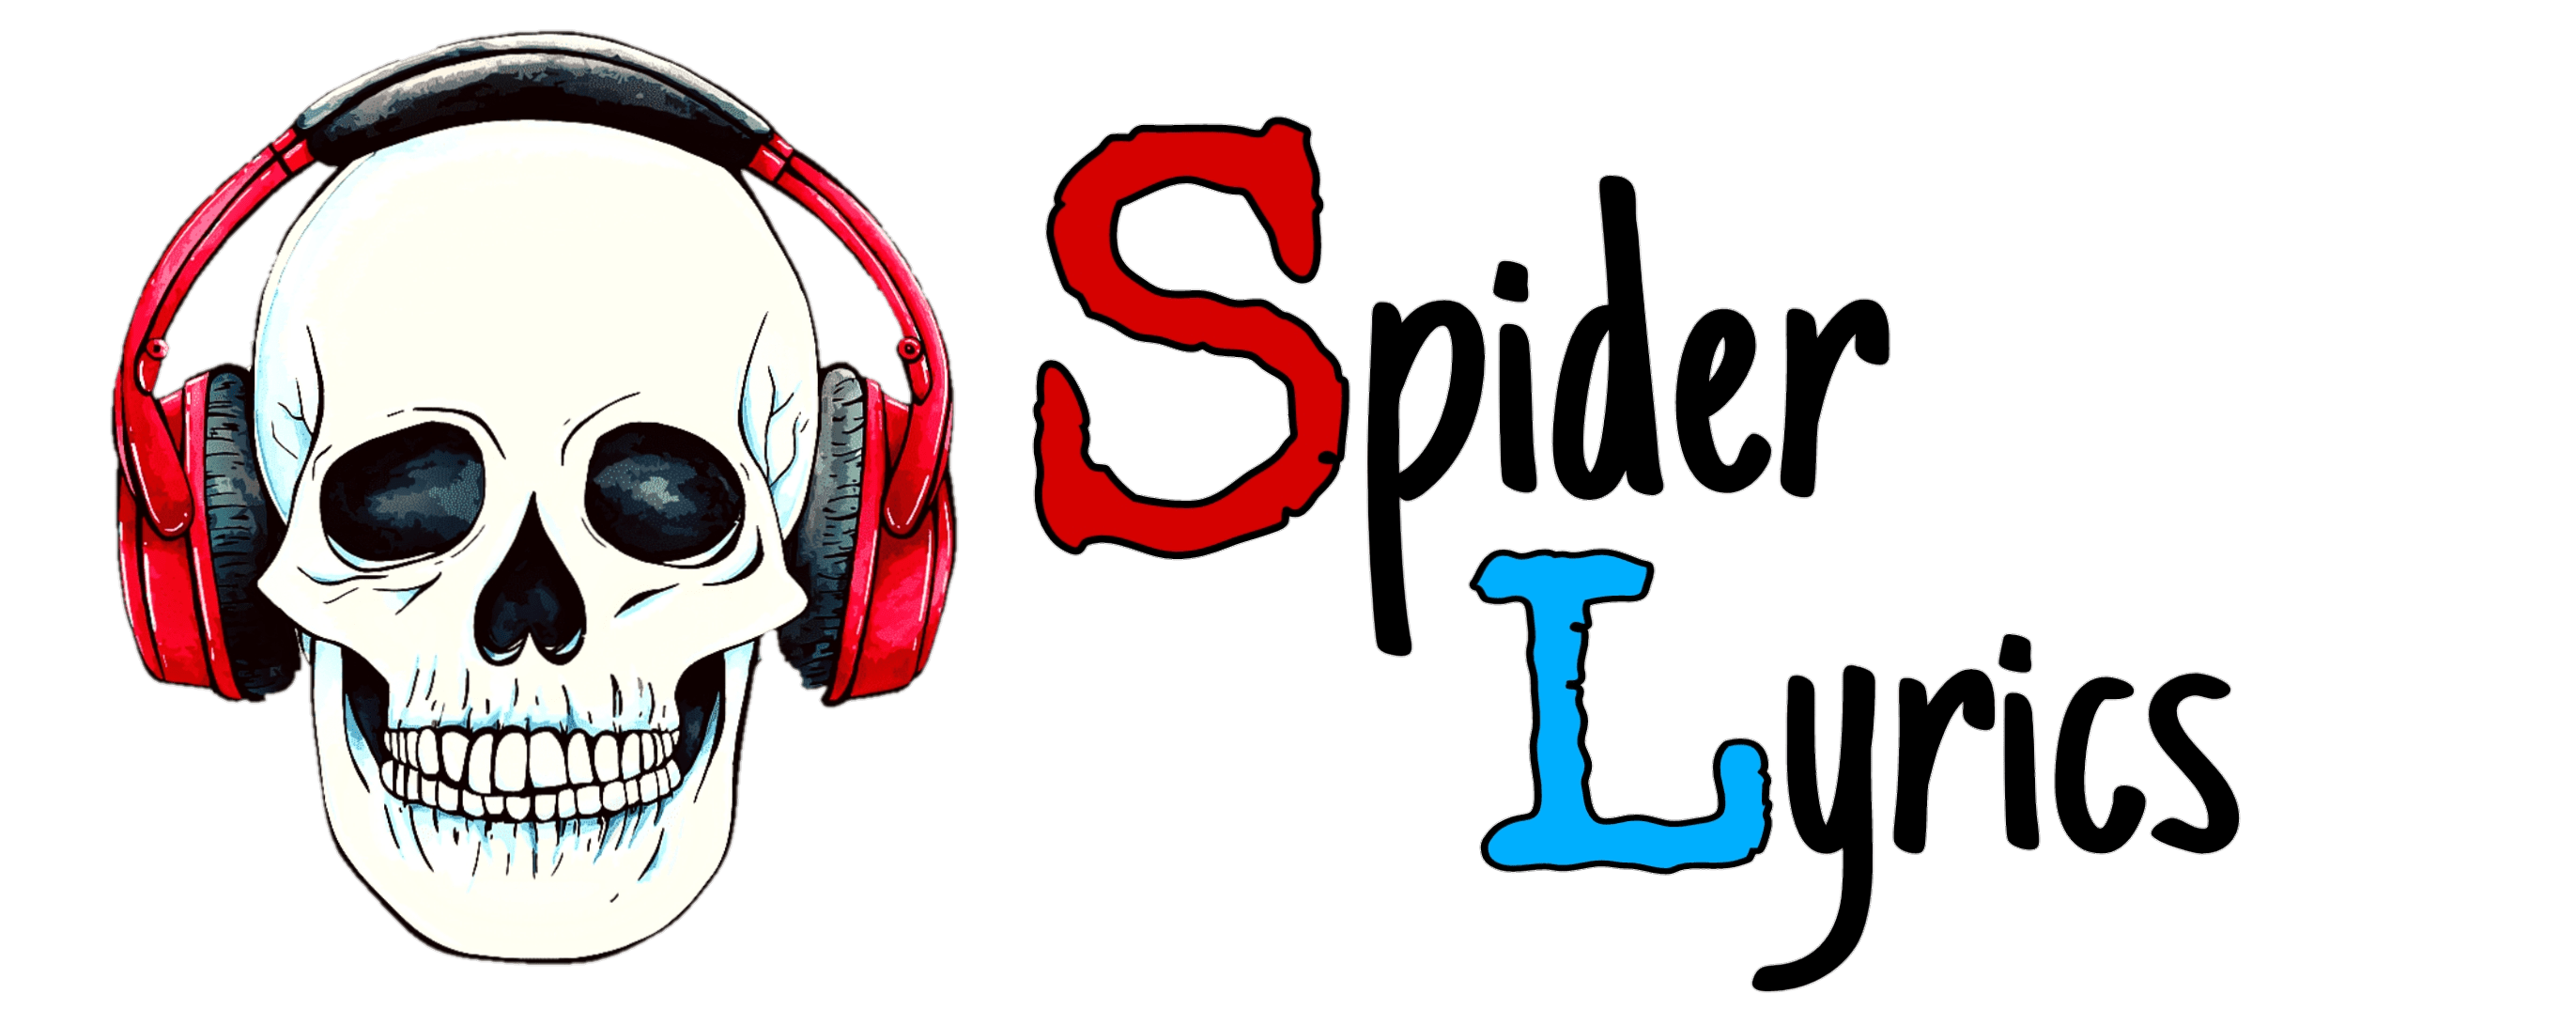 Spider Lyrics